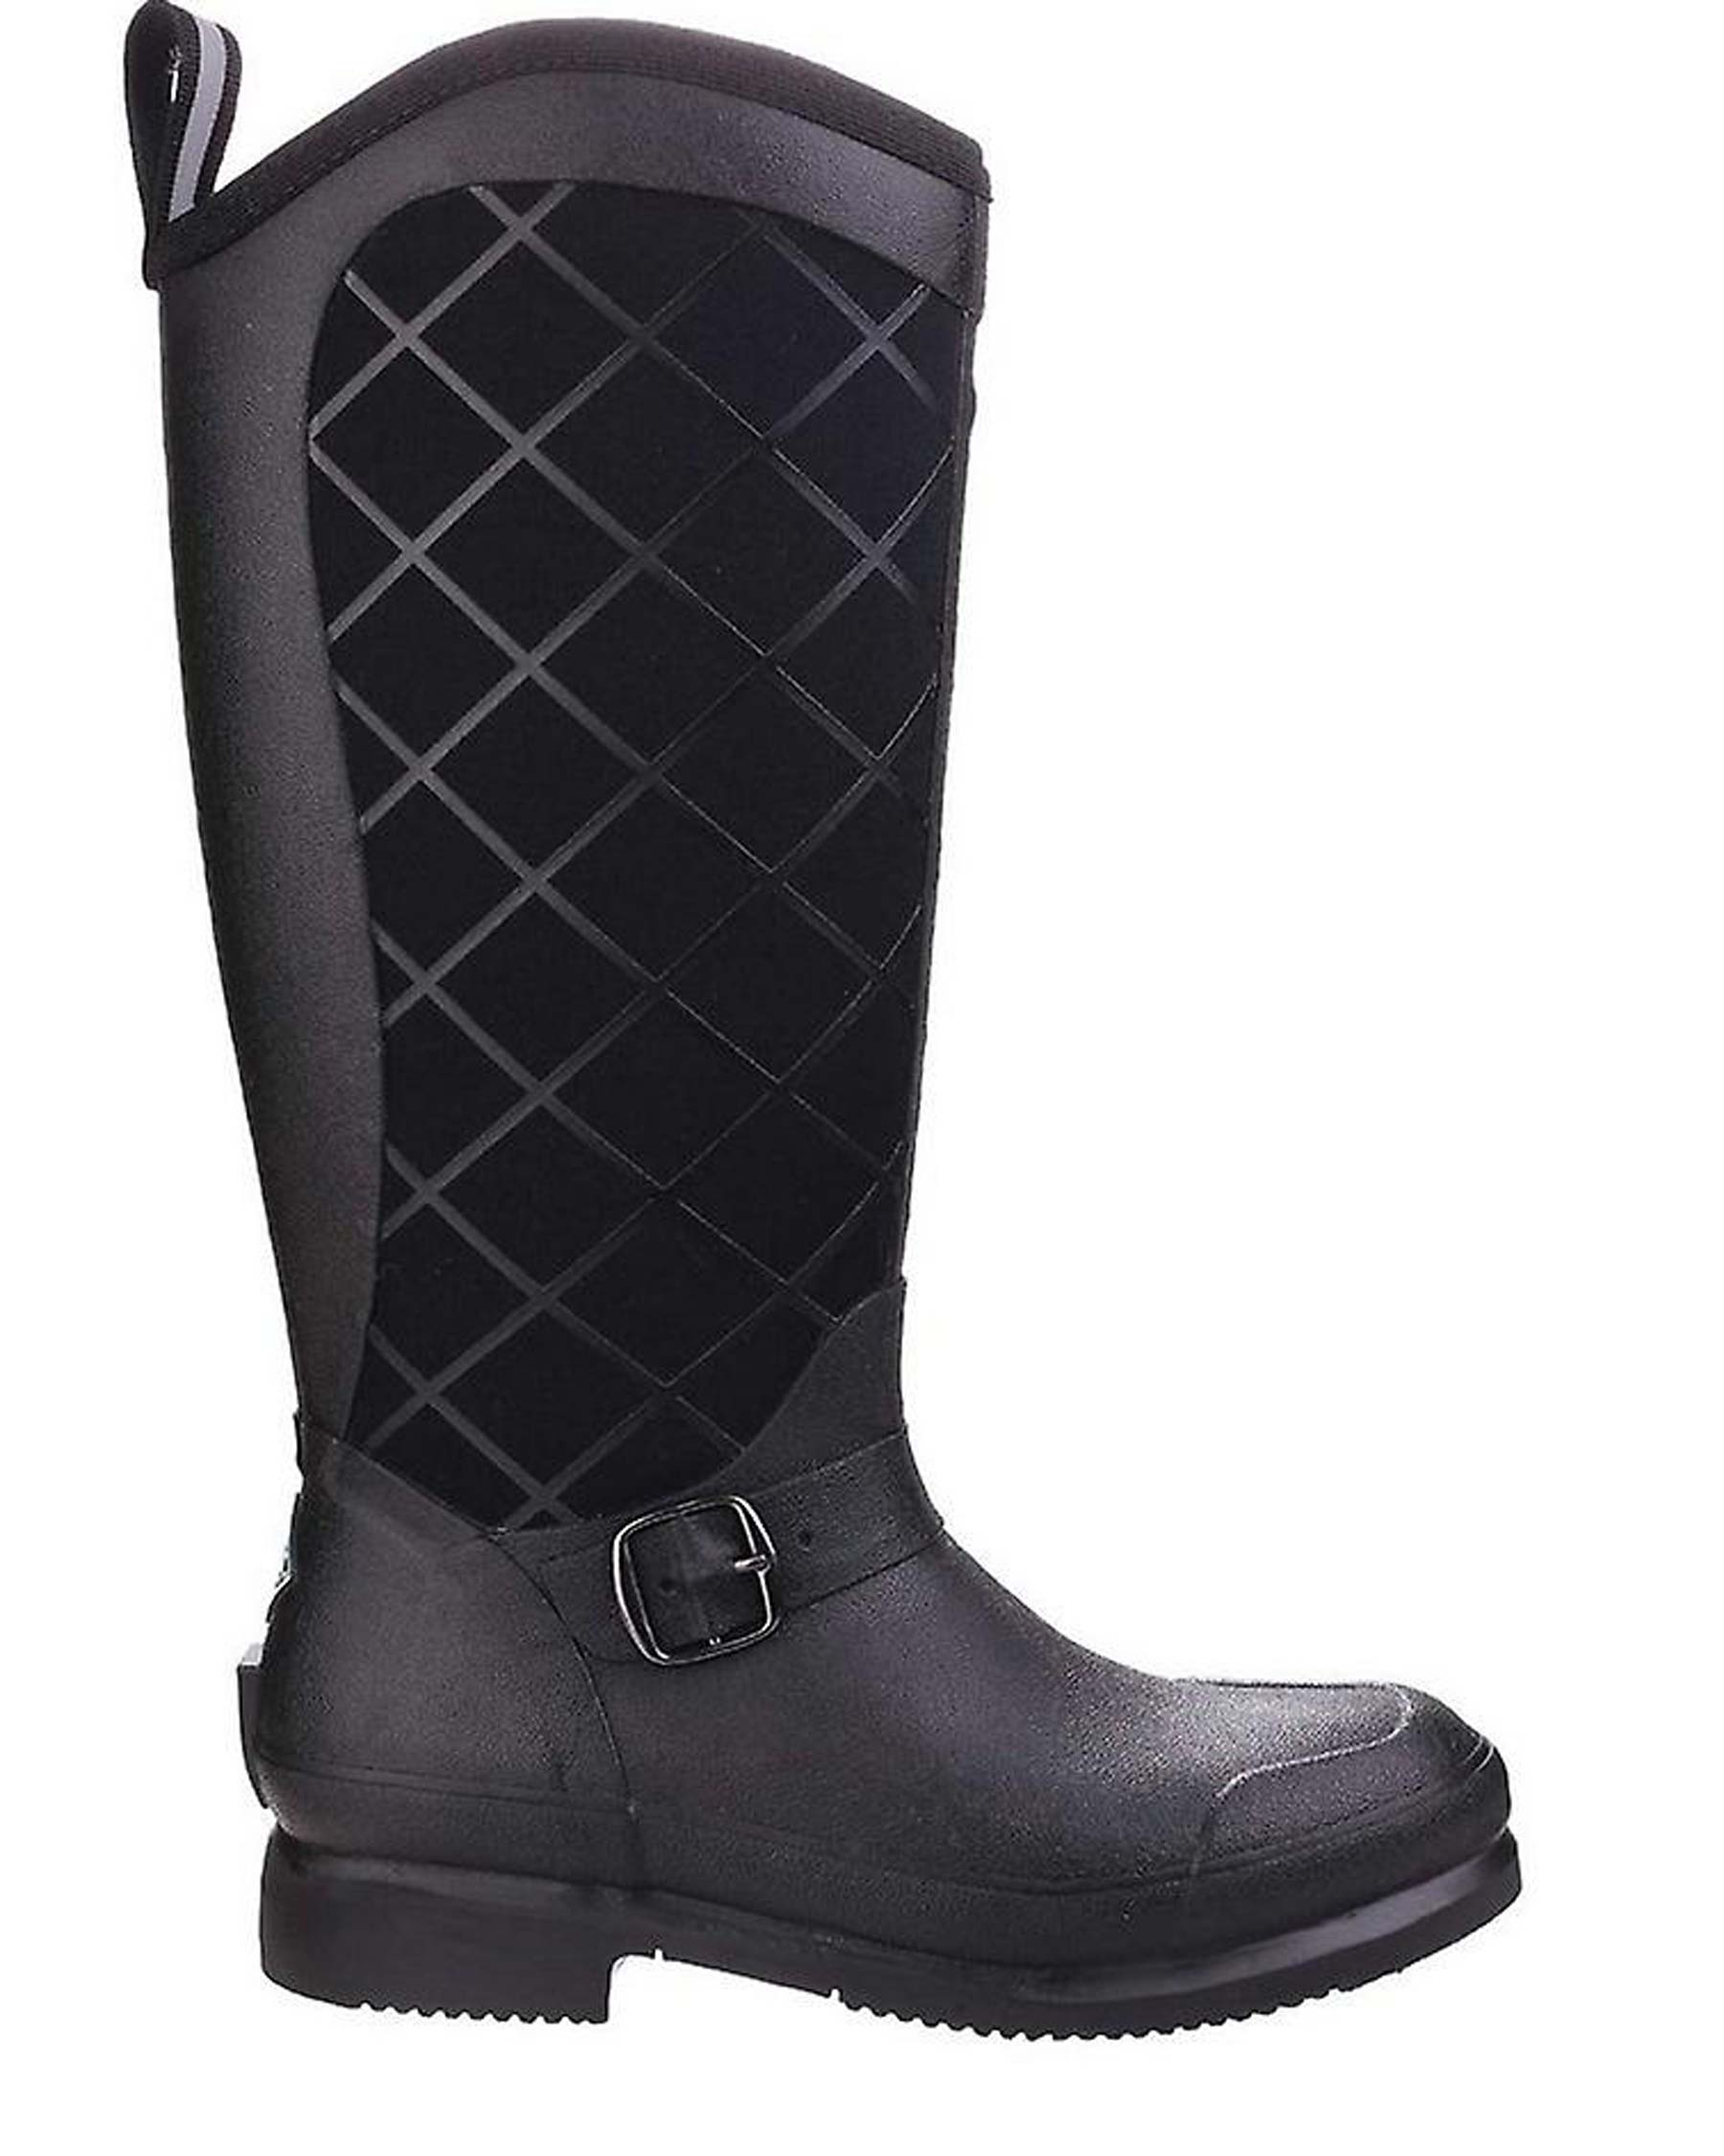 Pacy II All-Conditions Gumboots